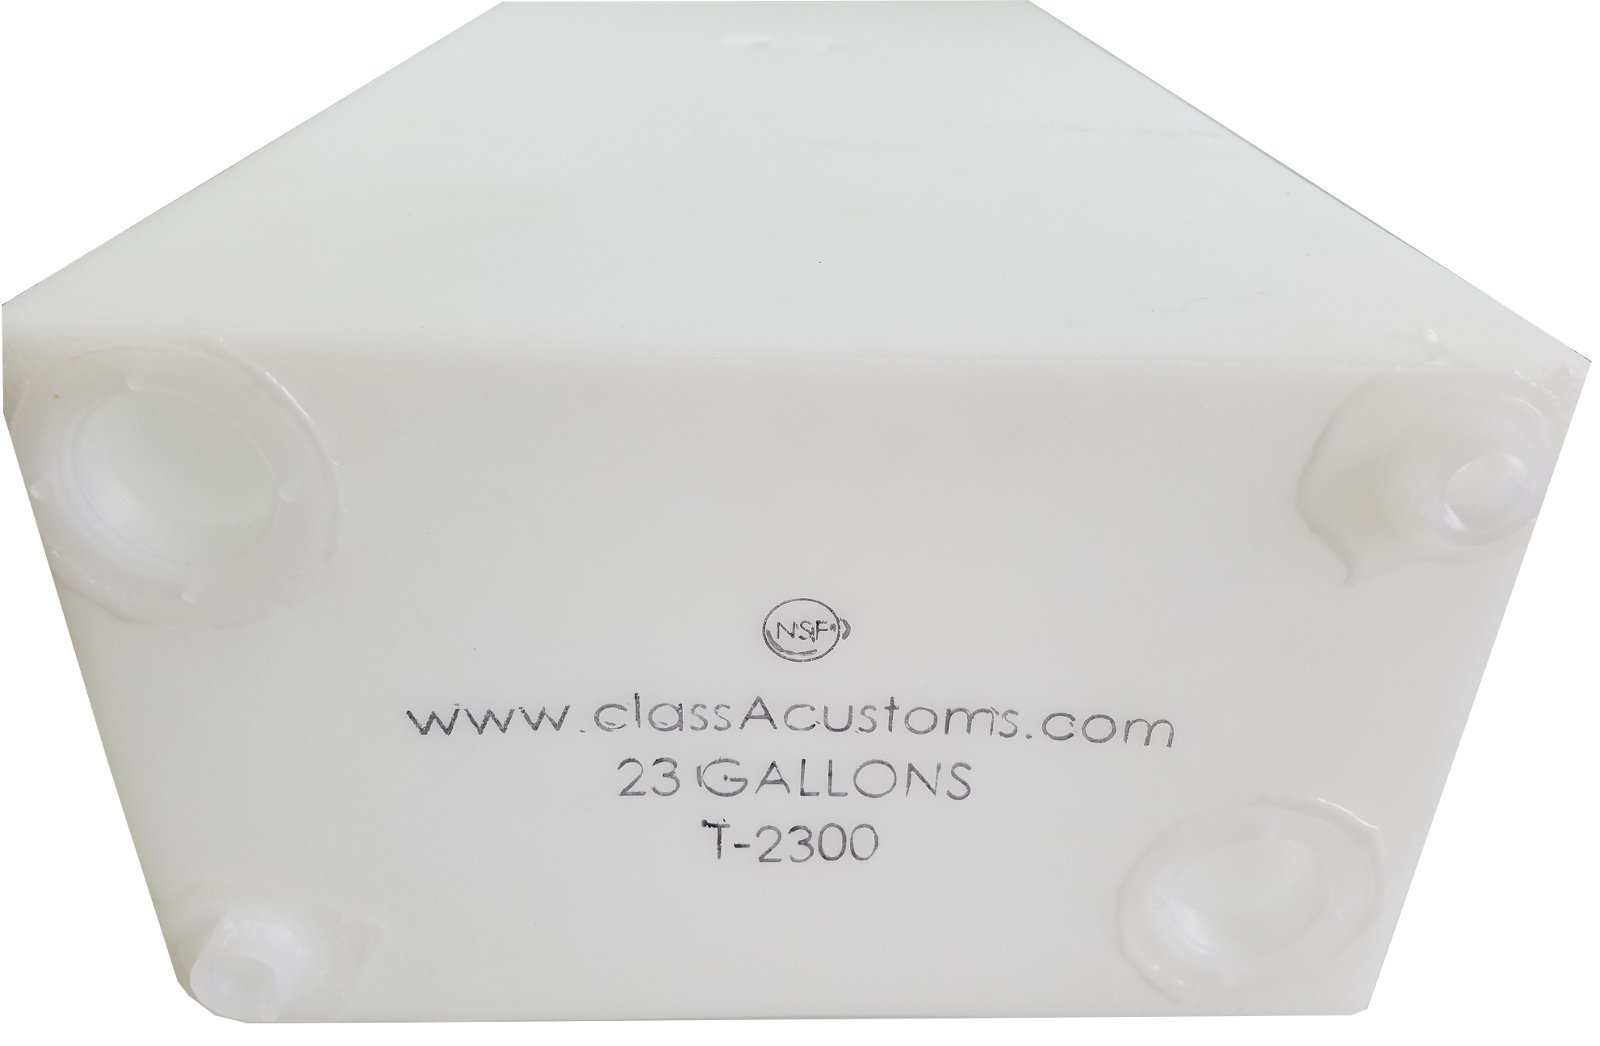 Class A Customs 23 Gallon Water Holding Tank NSF Approved T-2300